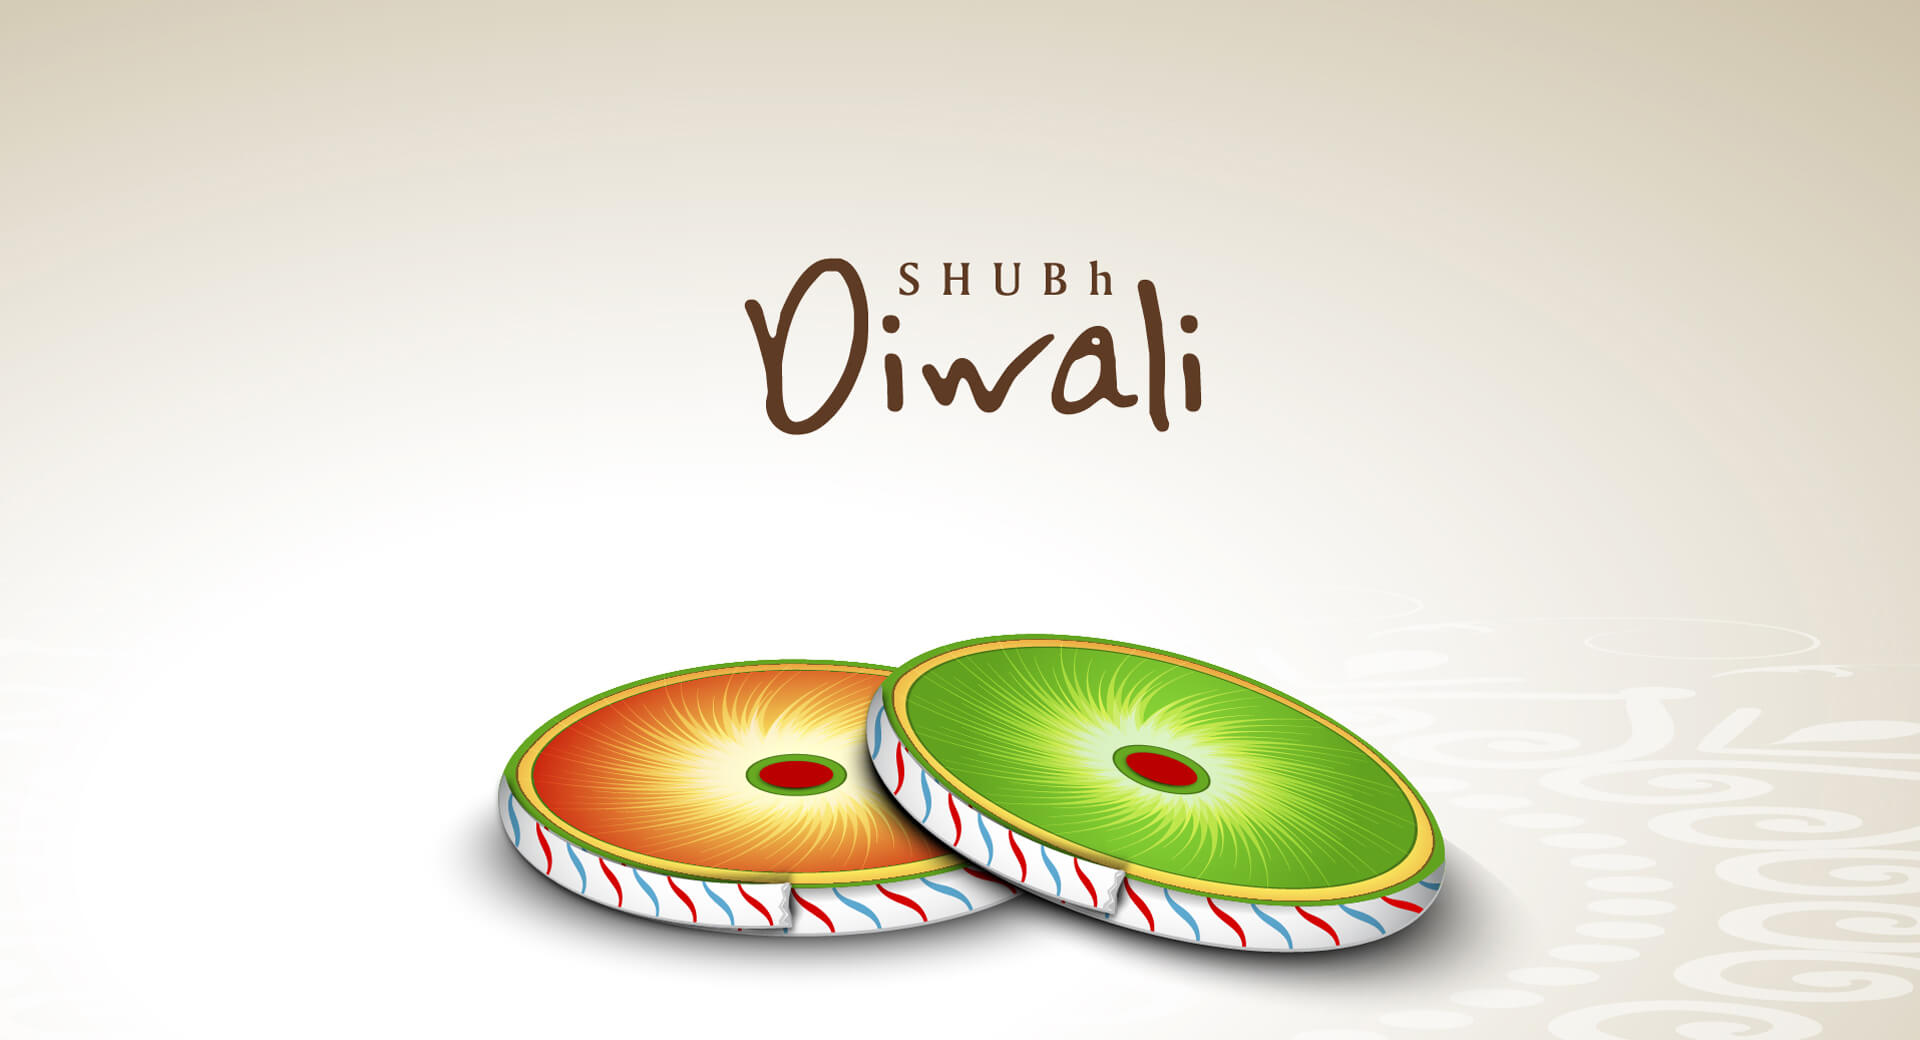 happy shubh diwali deepavali wishes chakra crackers hd wallpaper